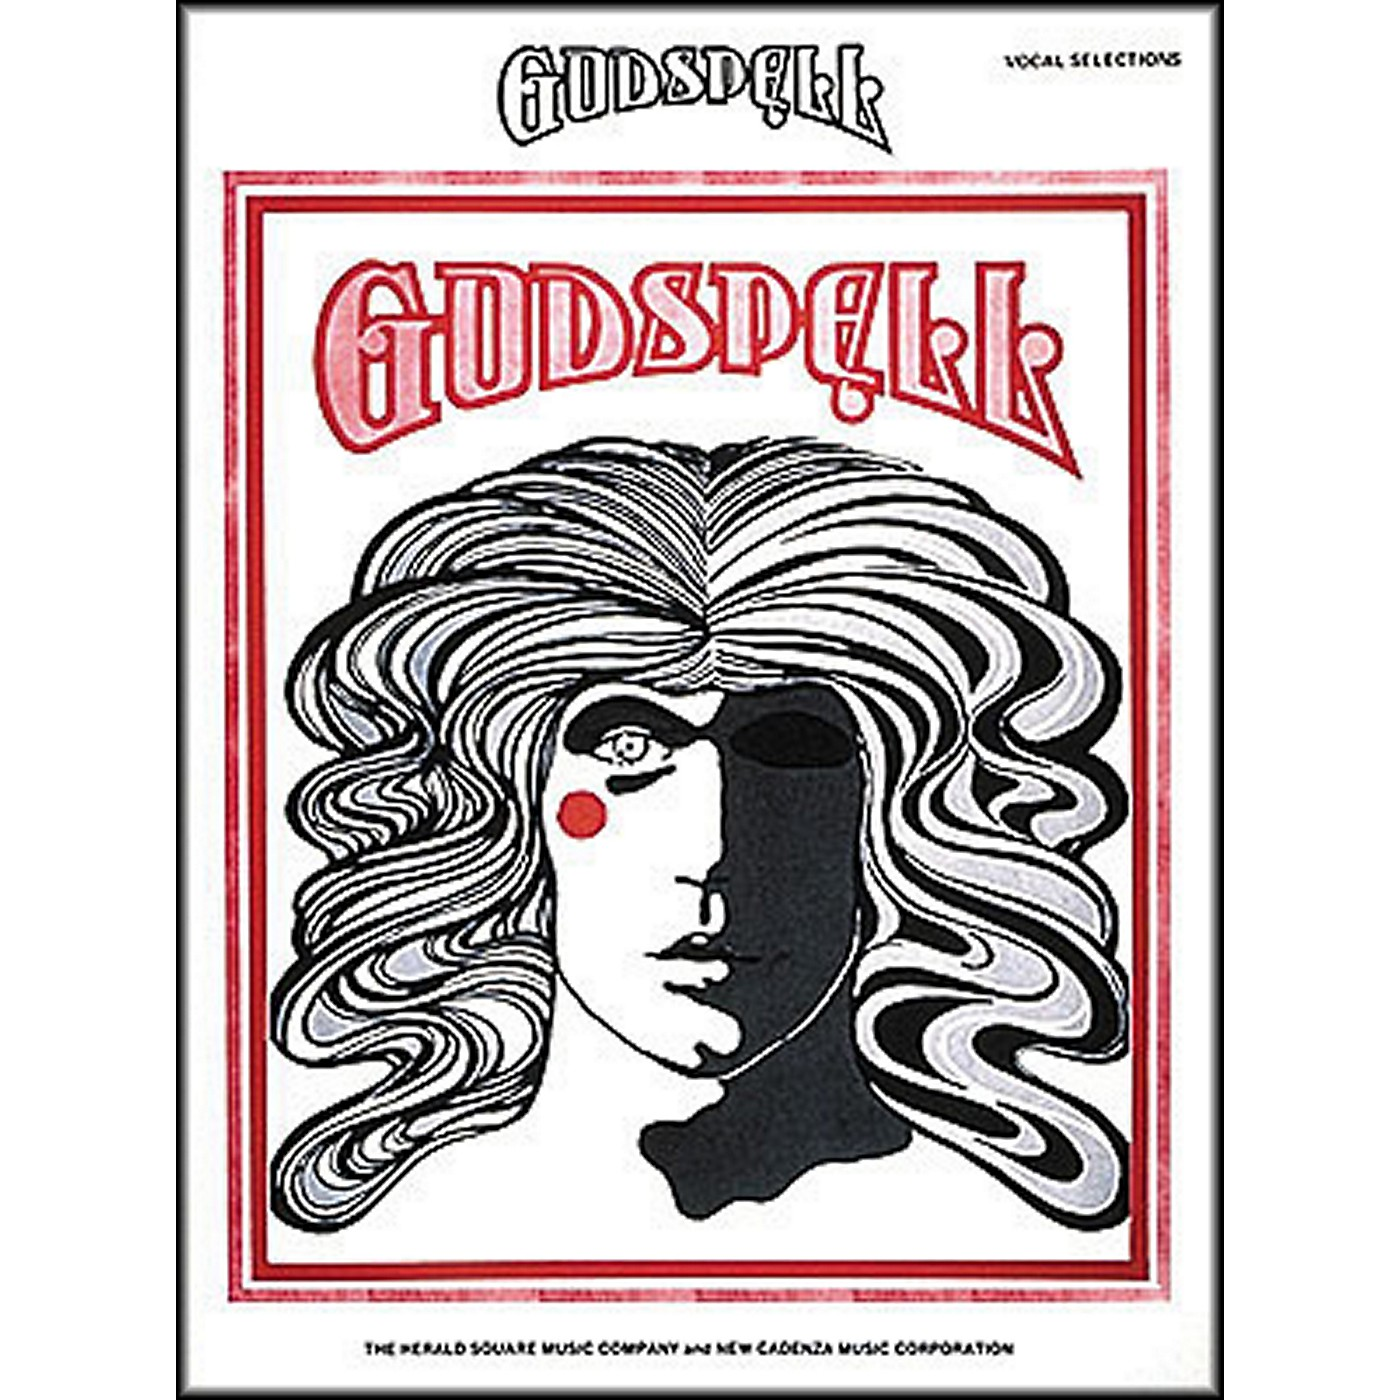 Hal Leonard Godspell Vocal Selection arranged for piano, vocal, and guitar (P/V/G) thumbnail